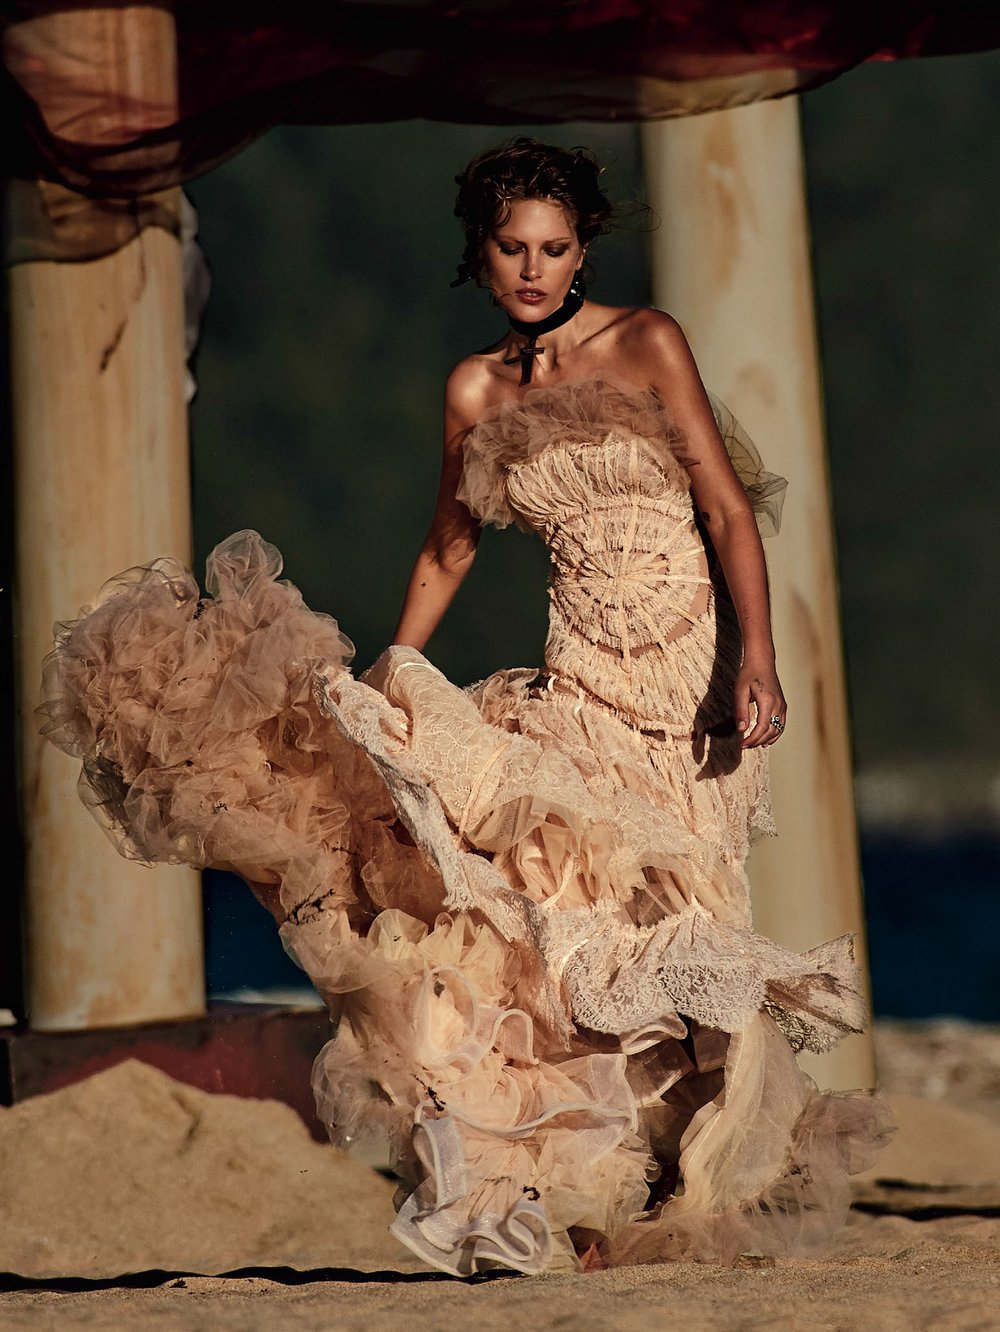 Catherine-McNeil-by-Gilles-Bensimon-for-Vogue-Australia-October-2014-11.jpg